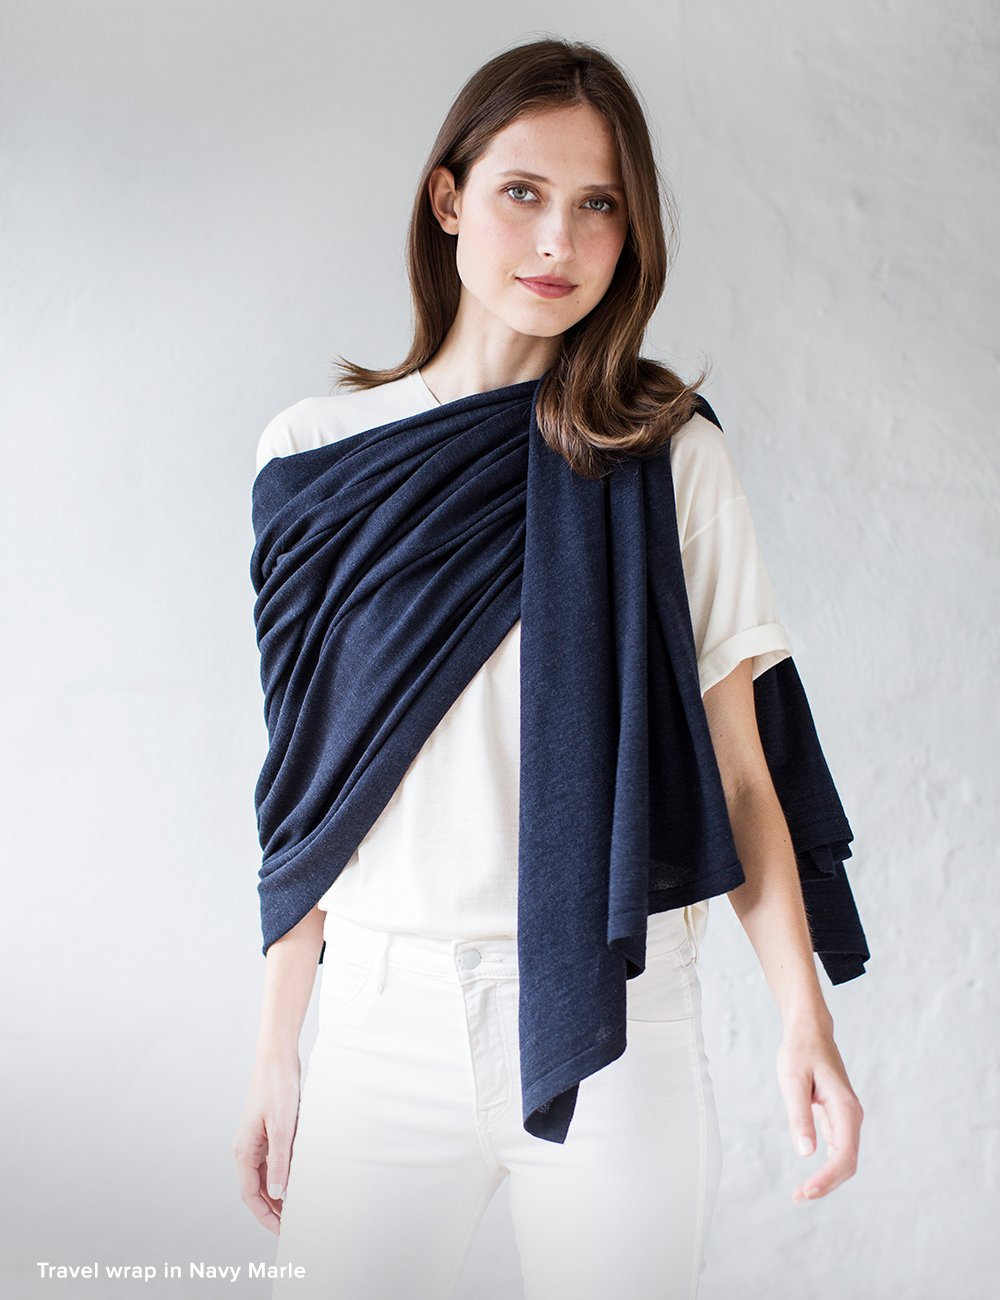 Australian Superfine Merino Wrap Travel Size - Navy Marle